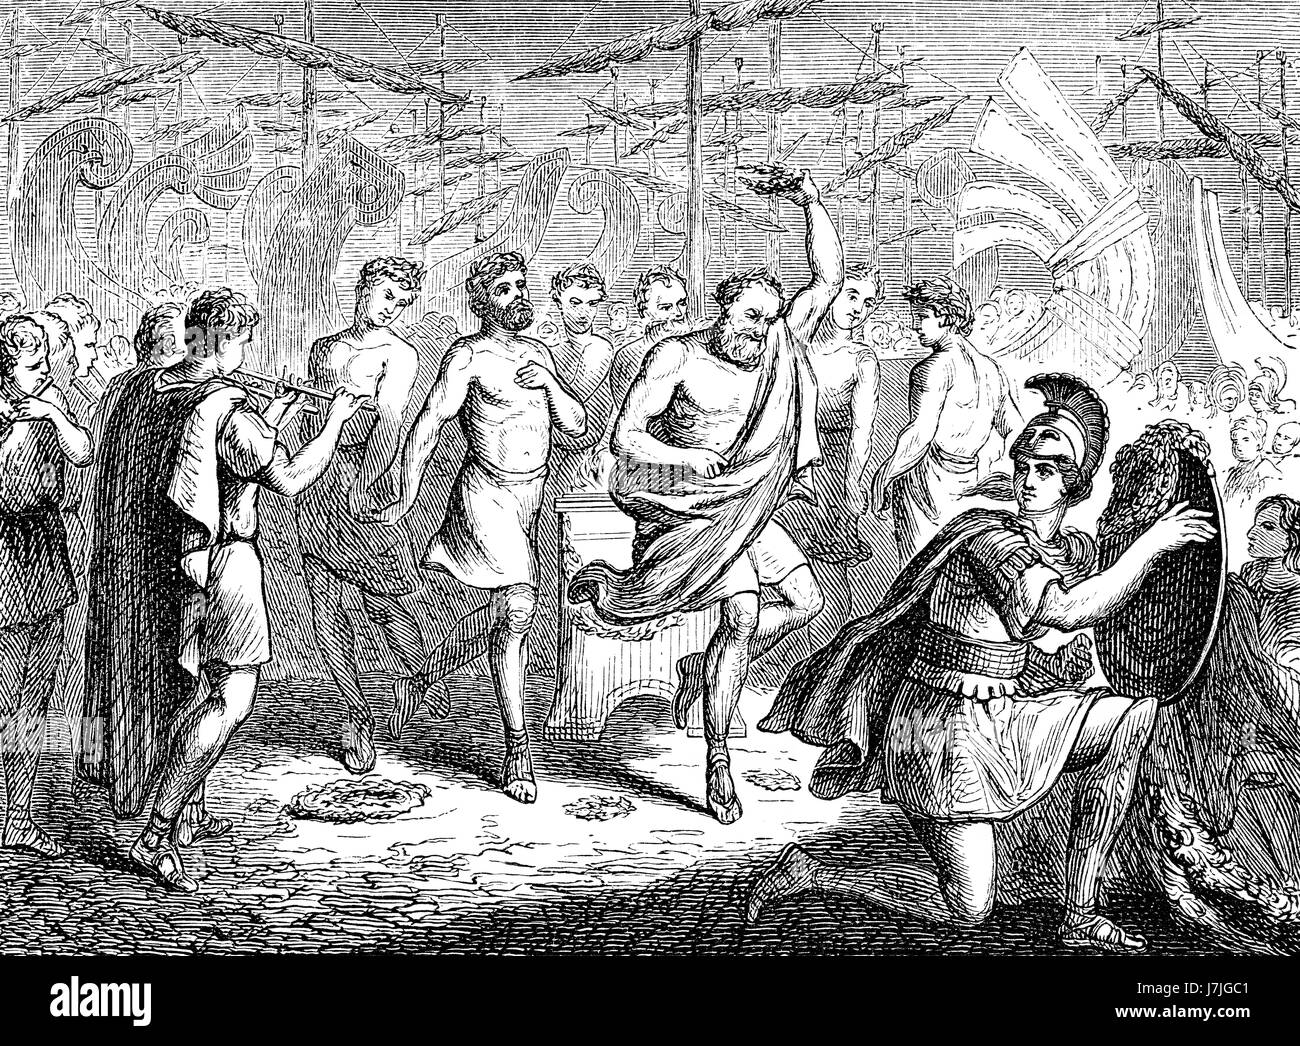 Aeschylus and Sophokles, dancing after the the Battle of Salamis in 480 BC - Stock Image